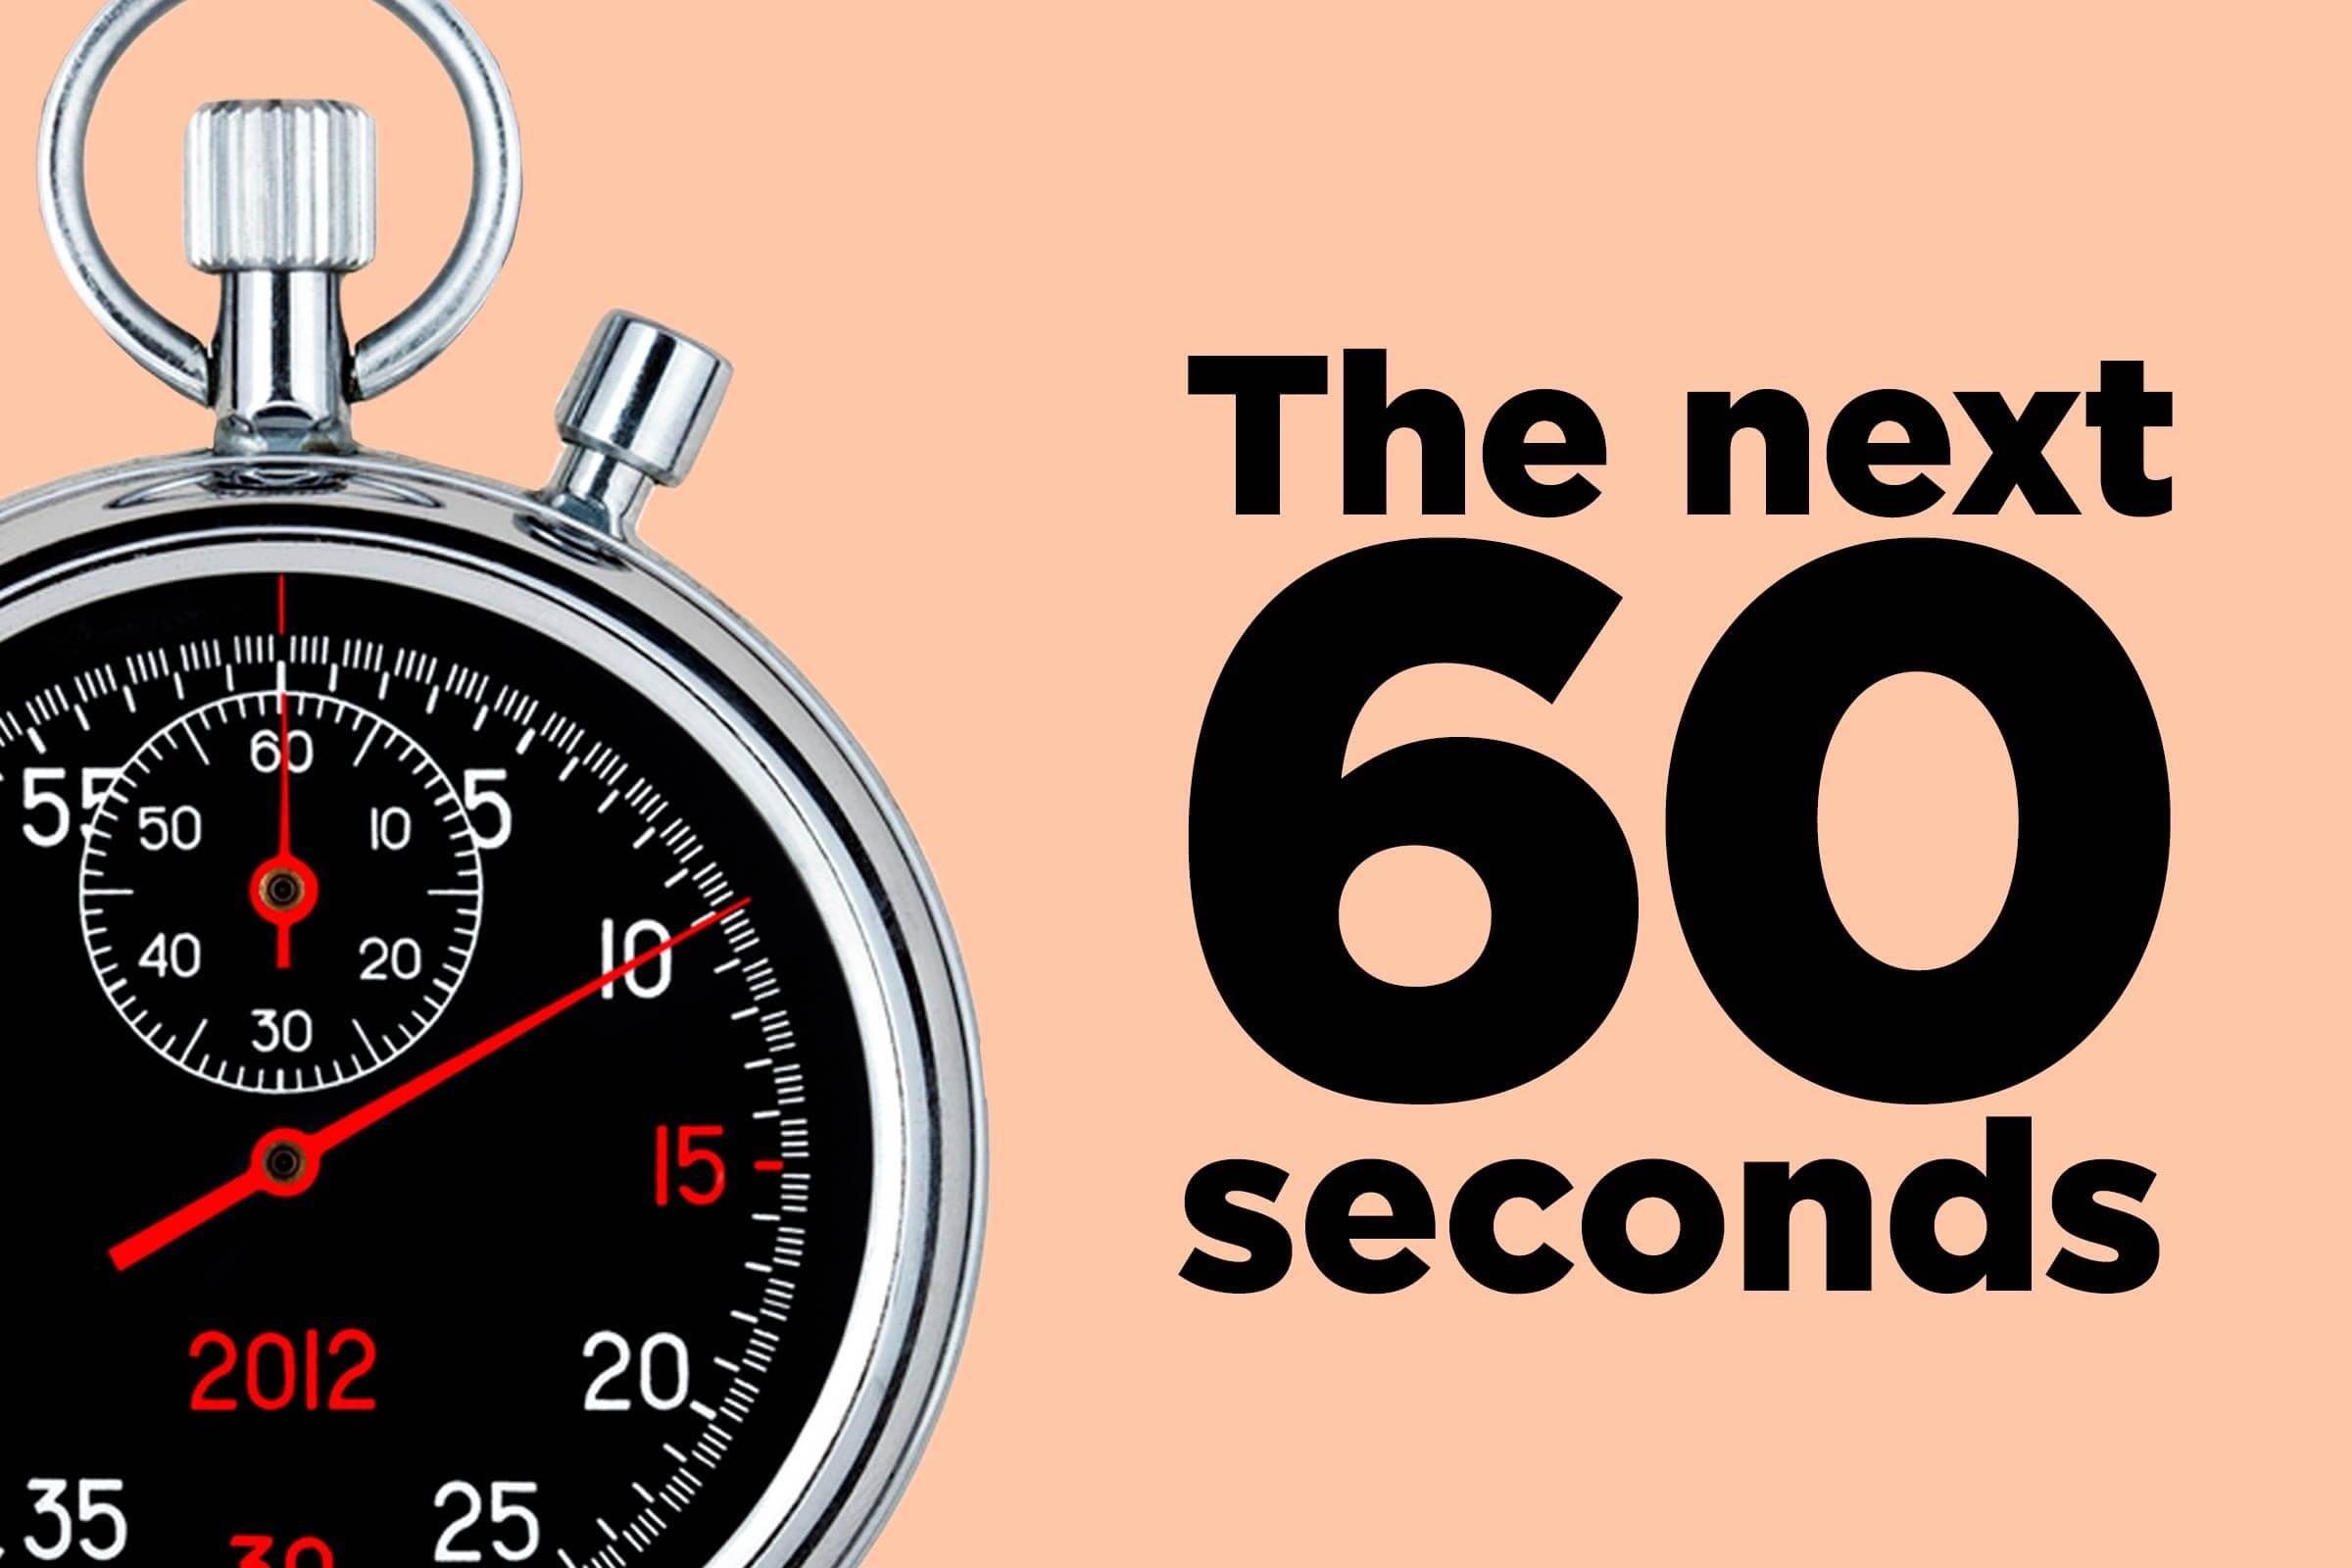 Fascinating-Things-That-Will-Happen-in-the-Next-60-Seconds